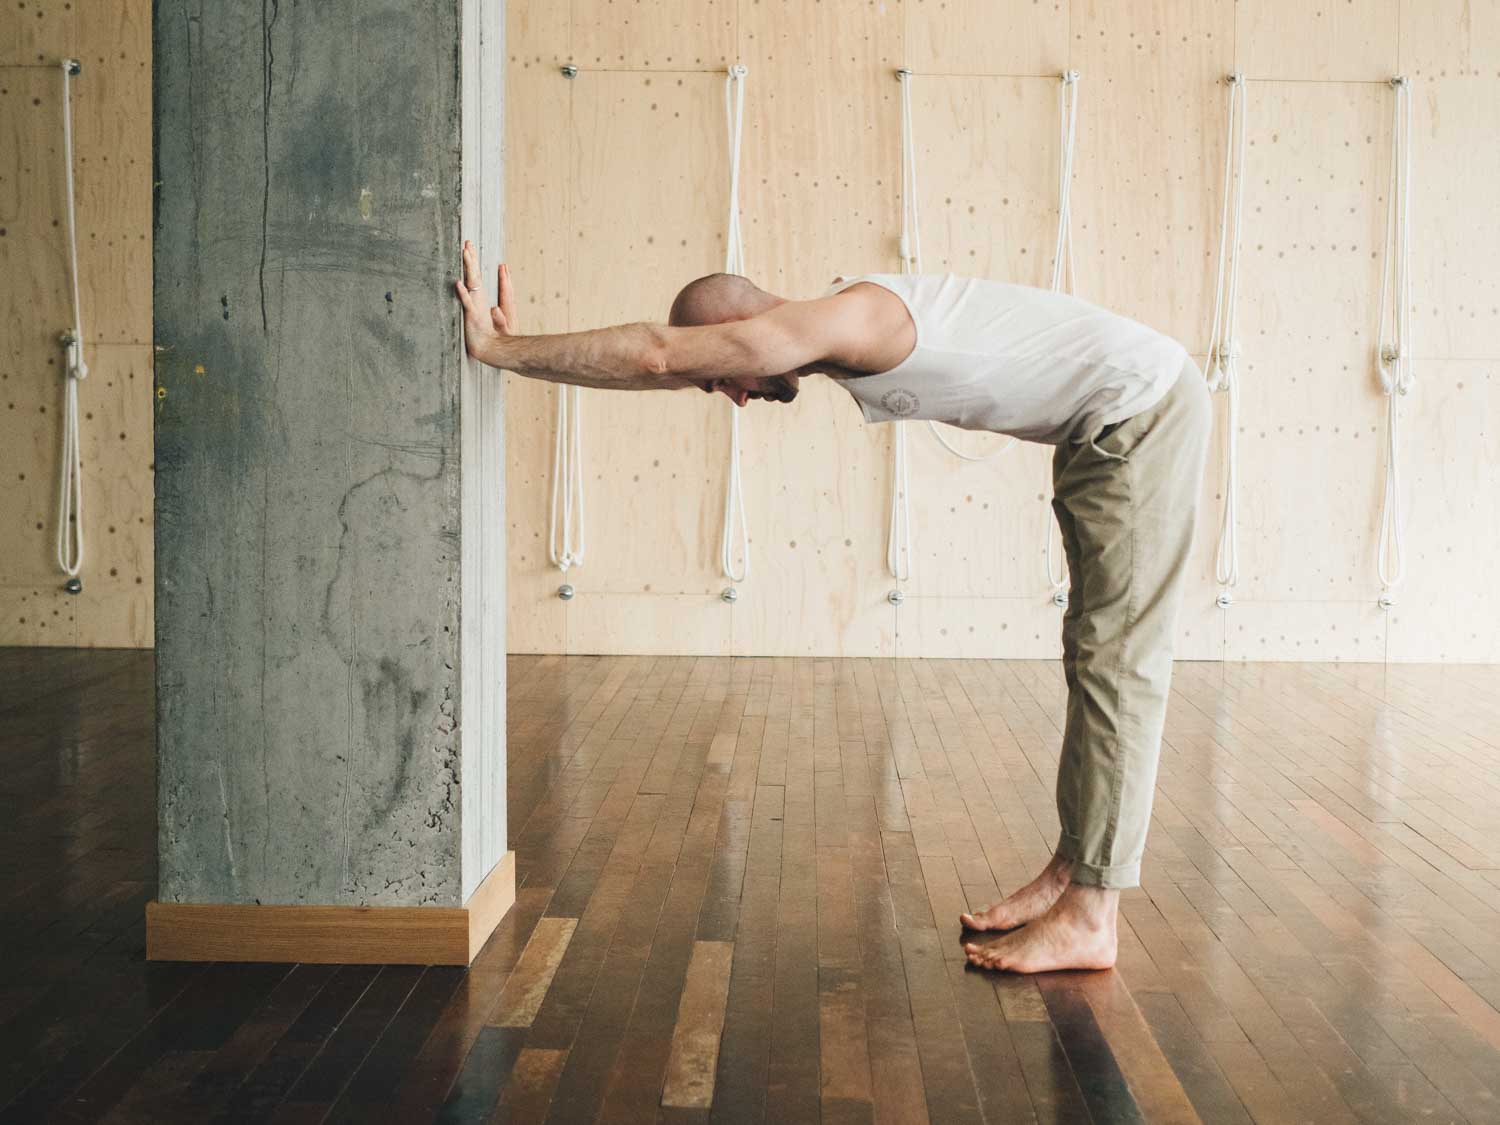 Man doing a shoulder stretch against a wall